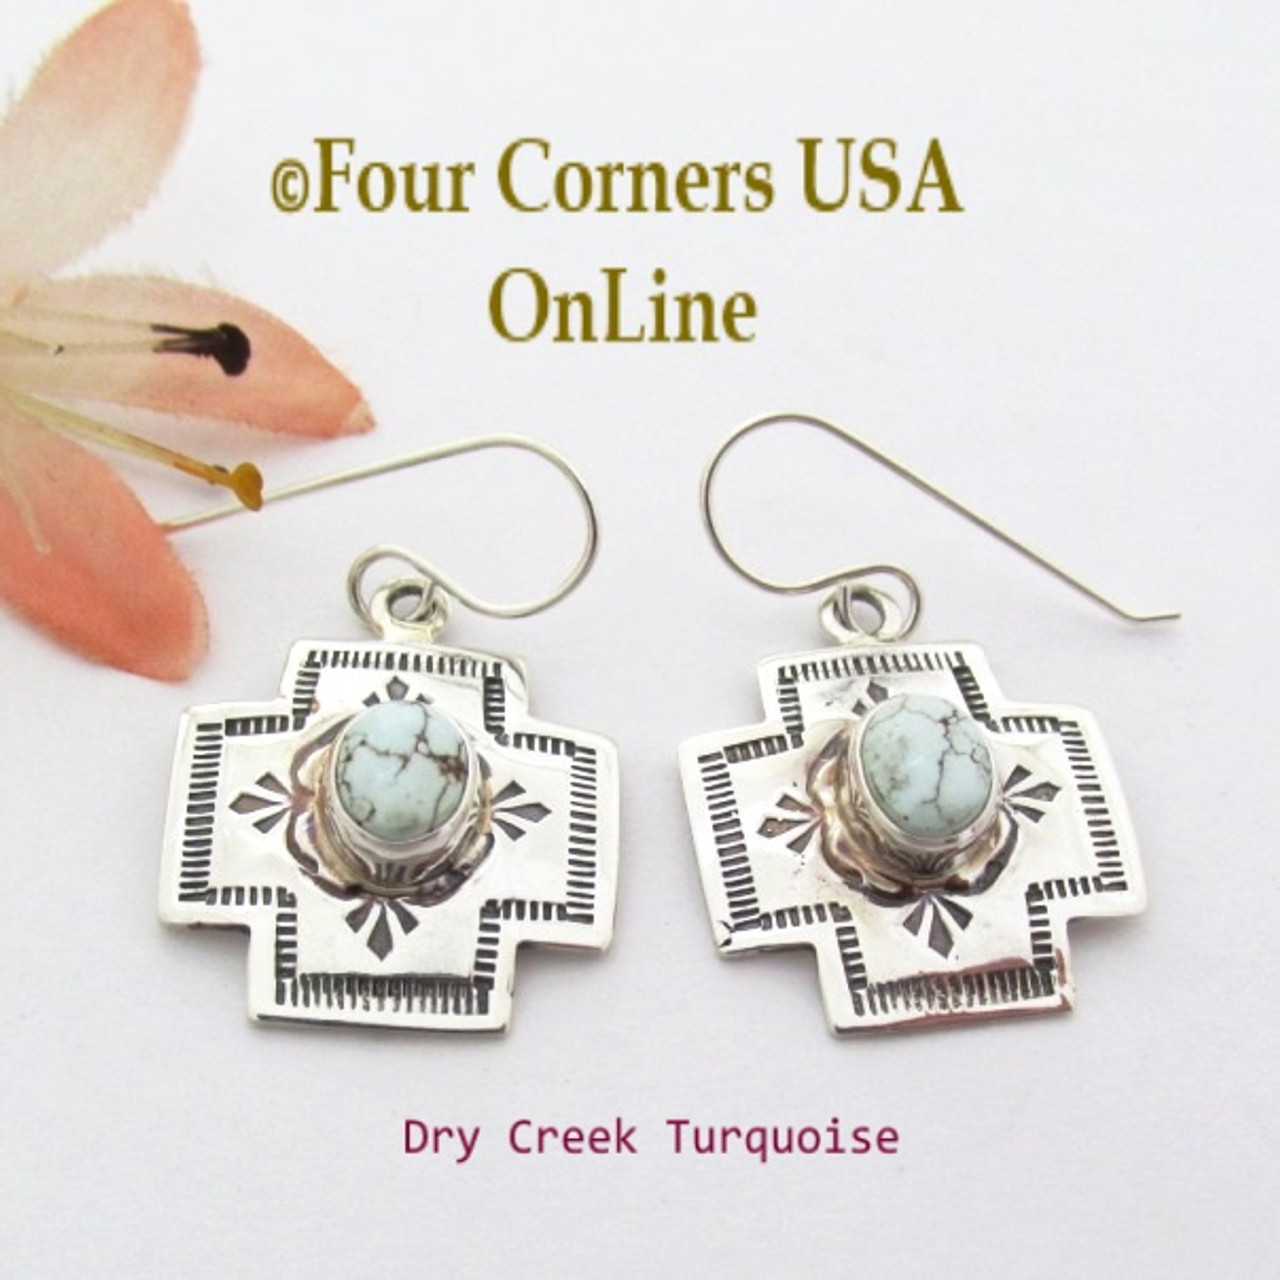 Dry Creek Turquoise Stamped Cross Earrings Navajo Silver Jewelry NAER-1544